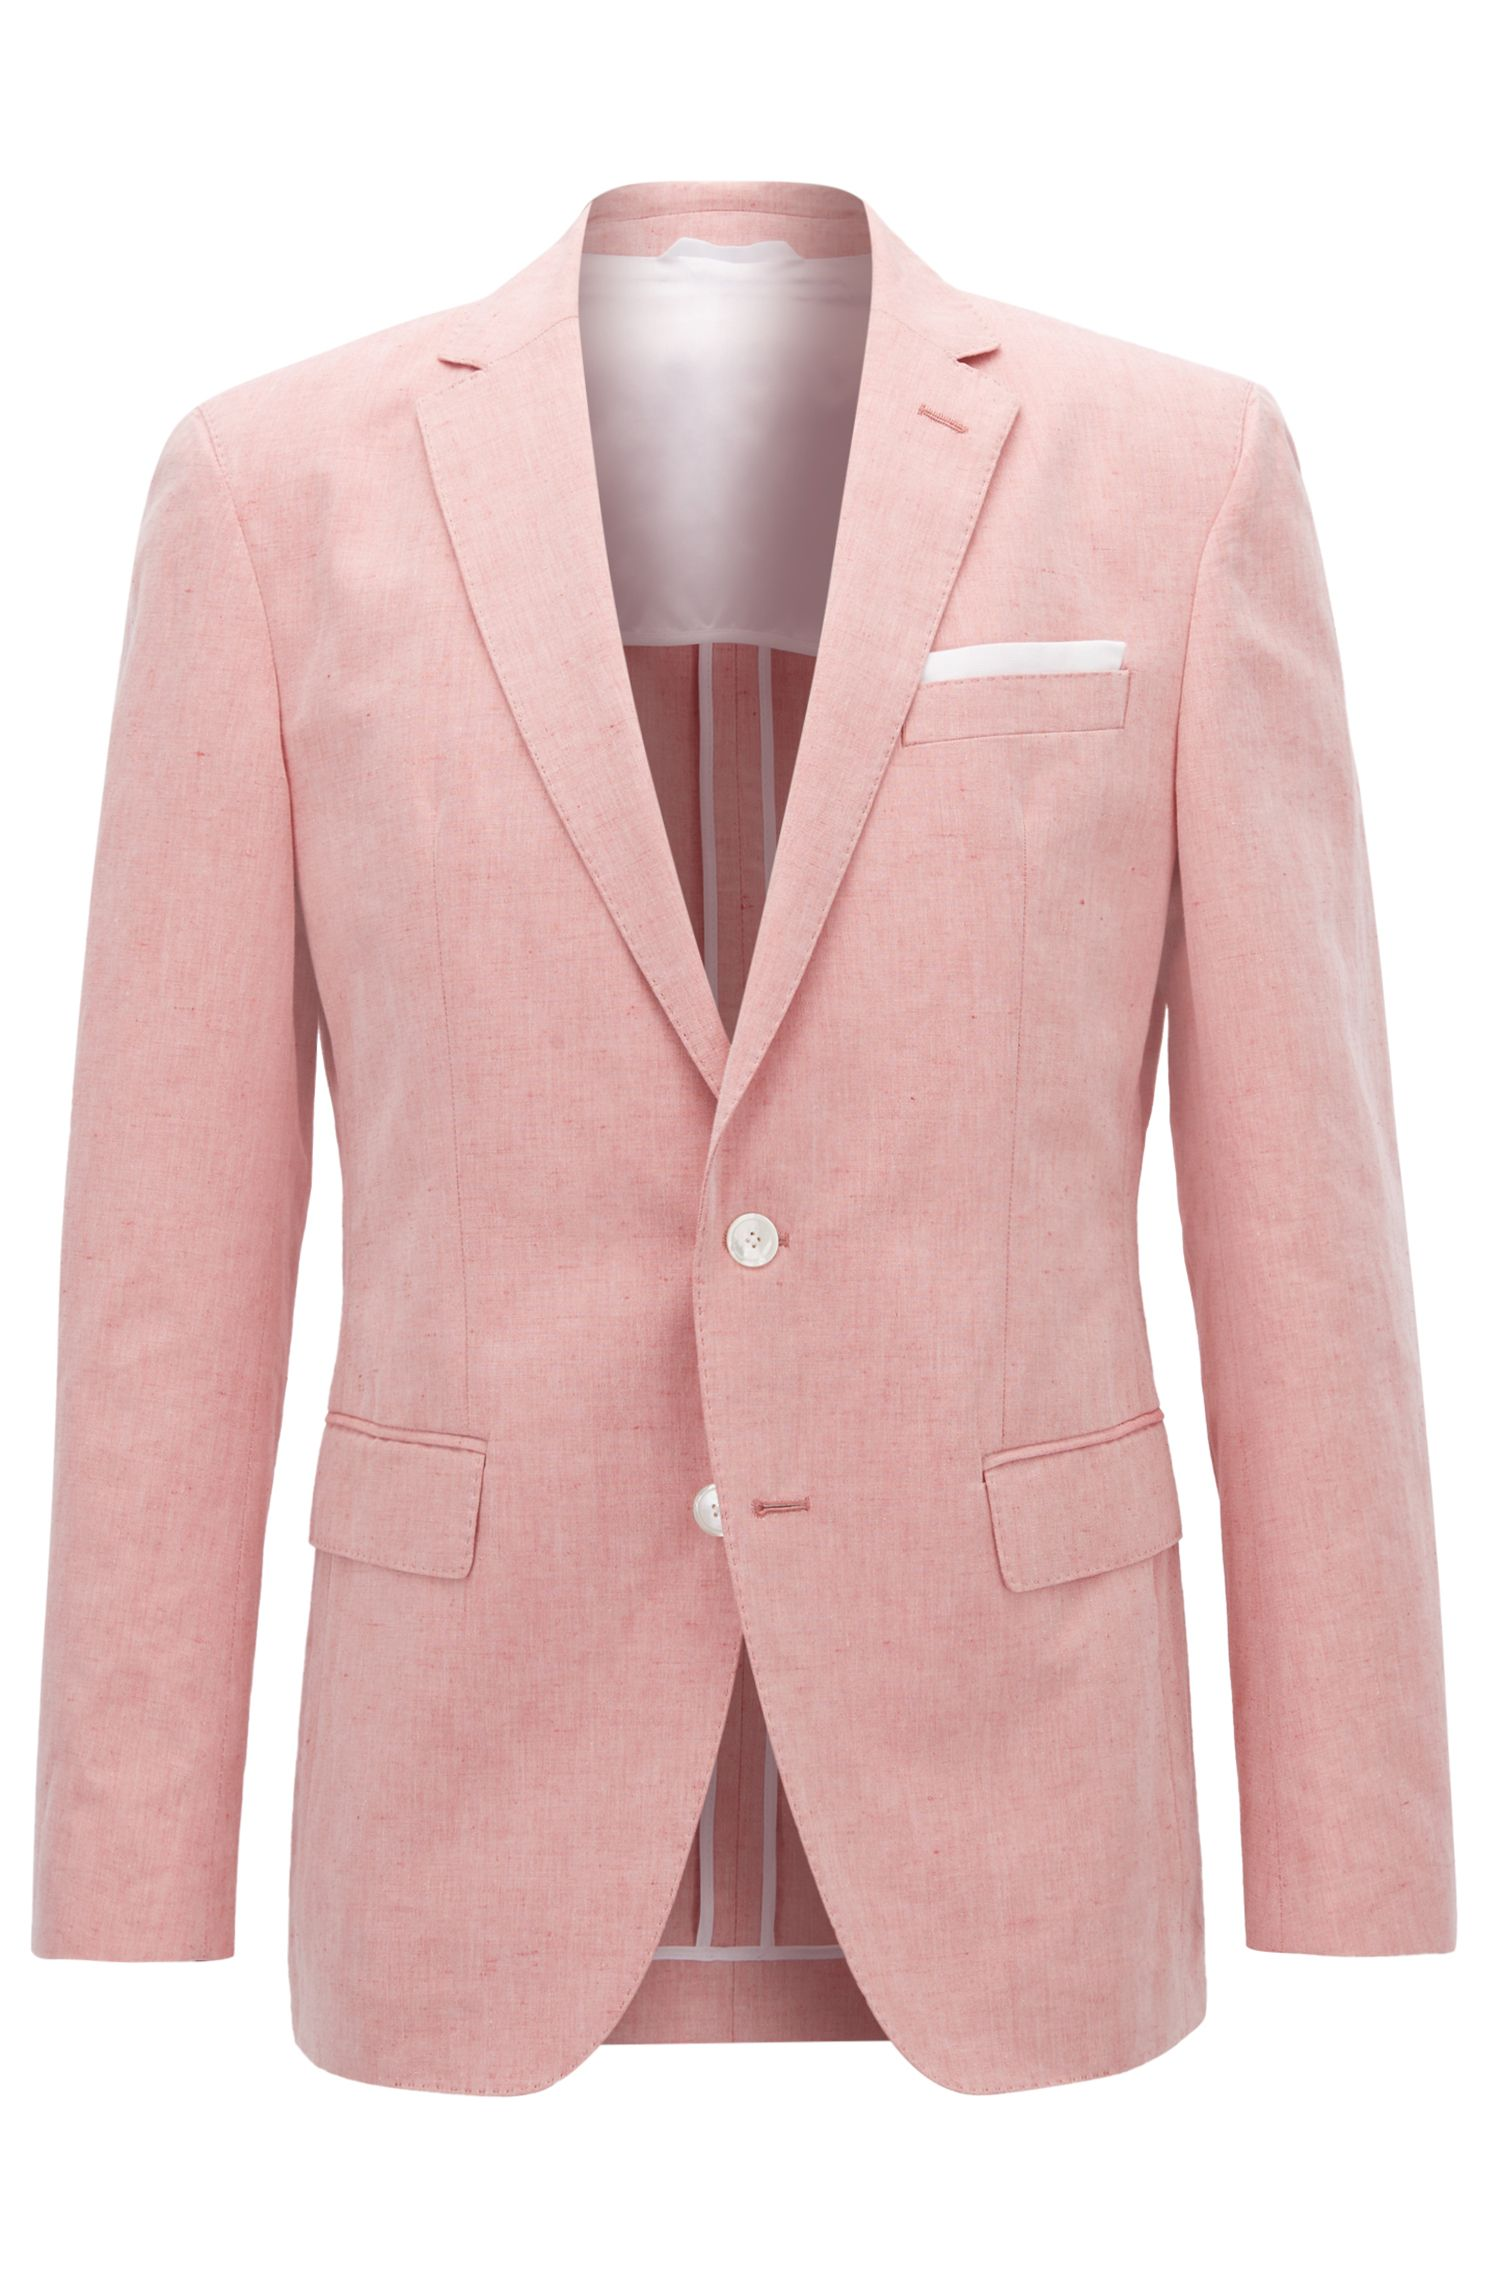 Linen Cotton Sport Coat, Slim Fit | Hartlay